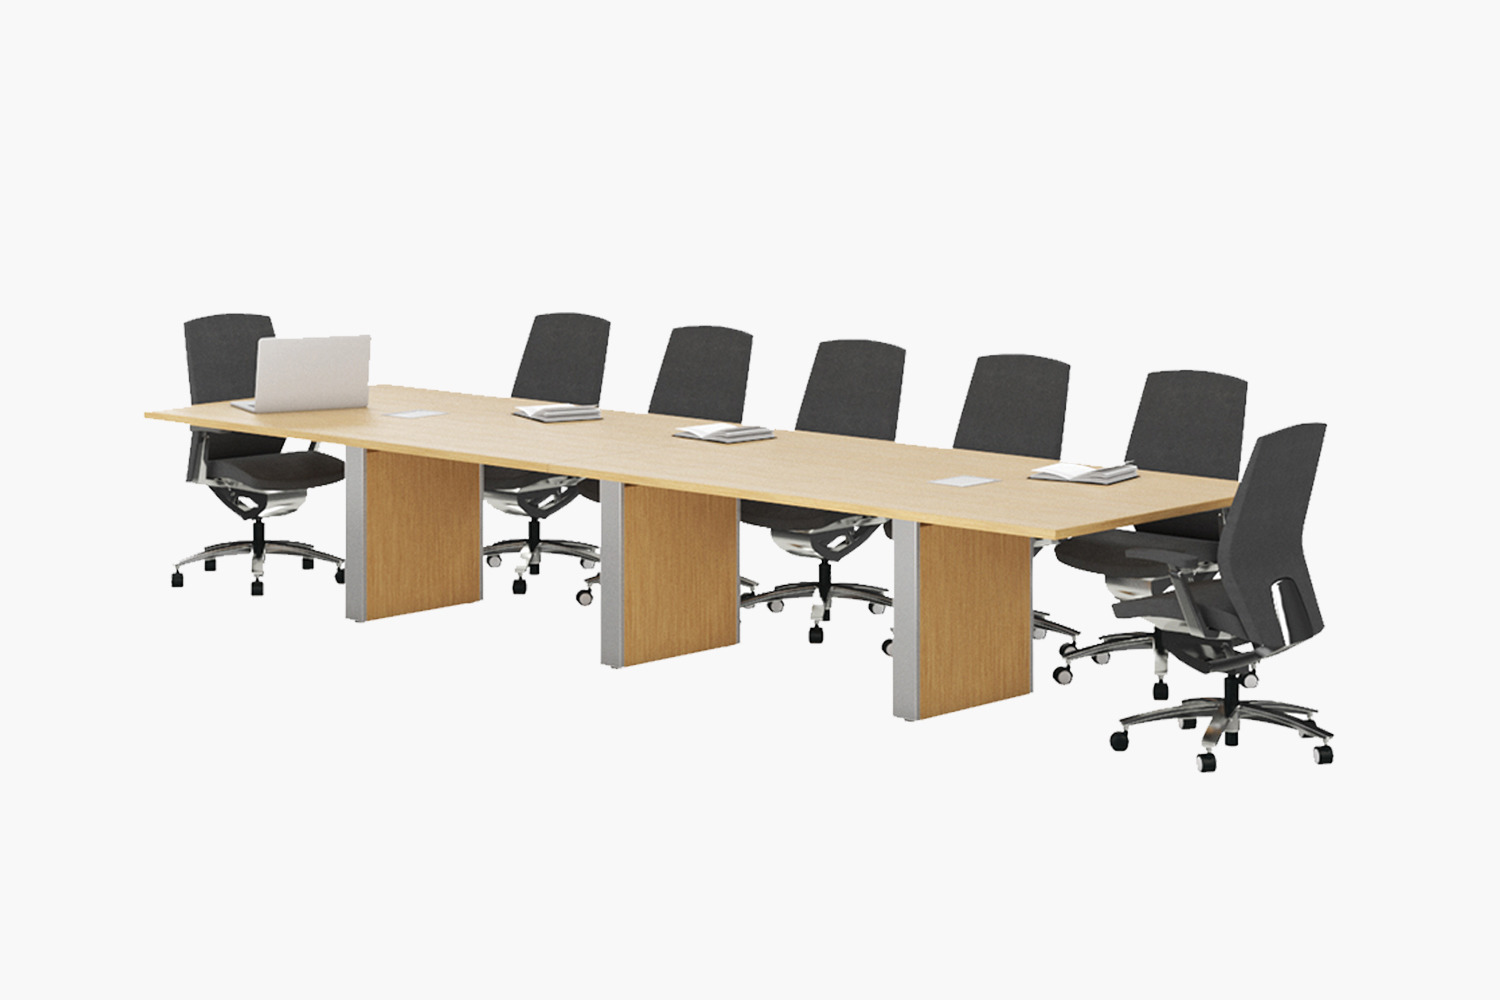 Education Office - Expanding conference table